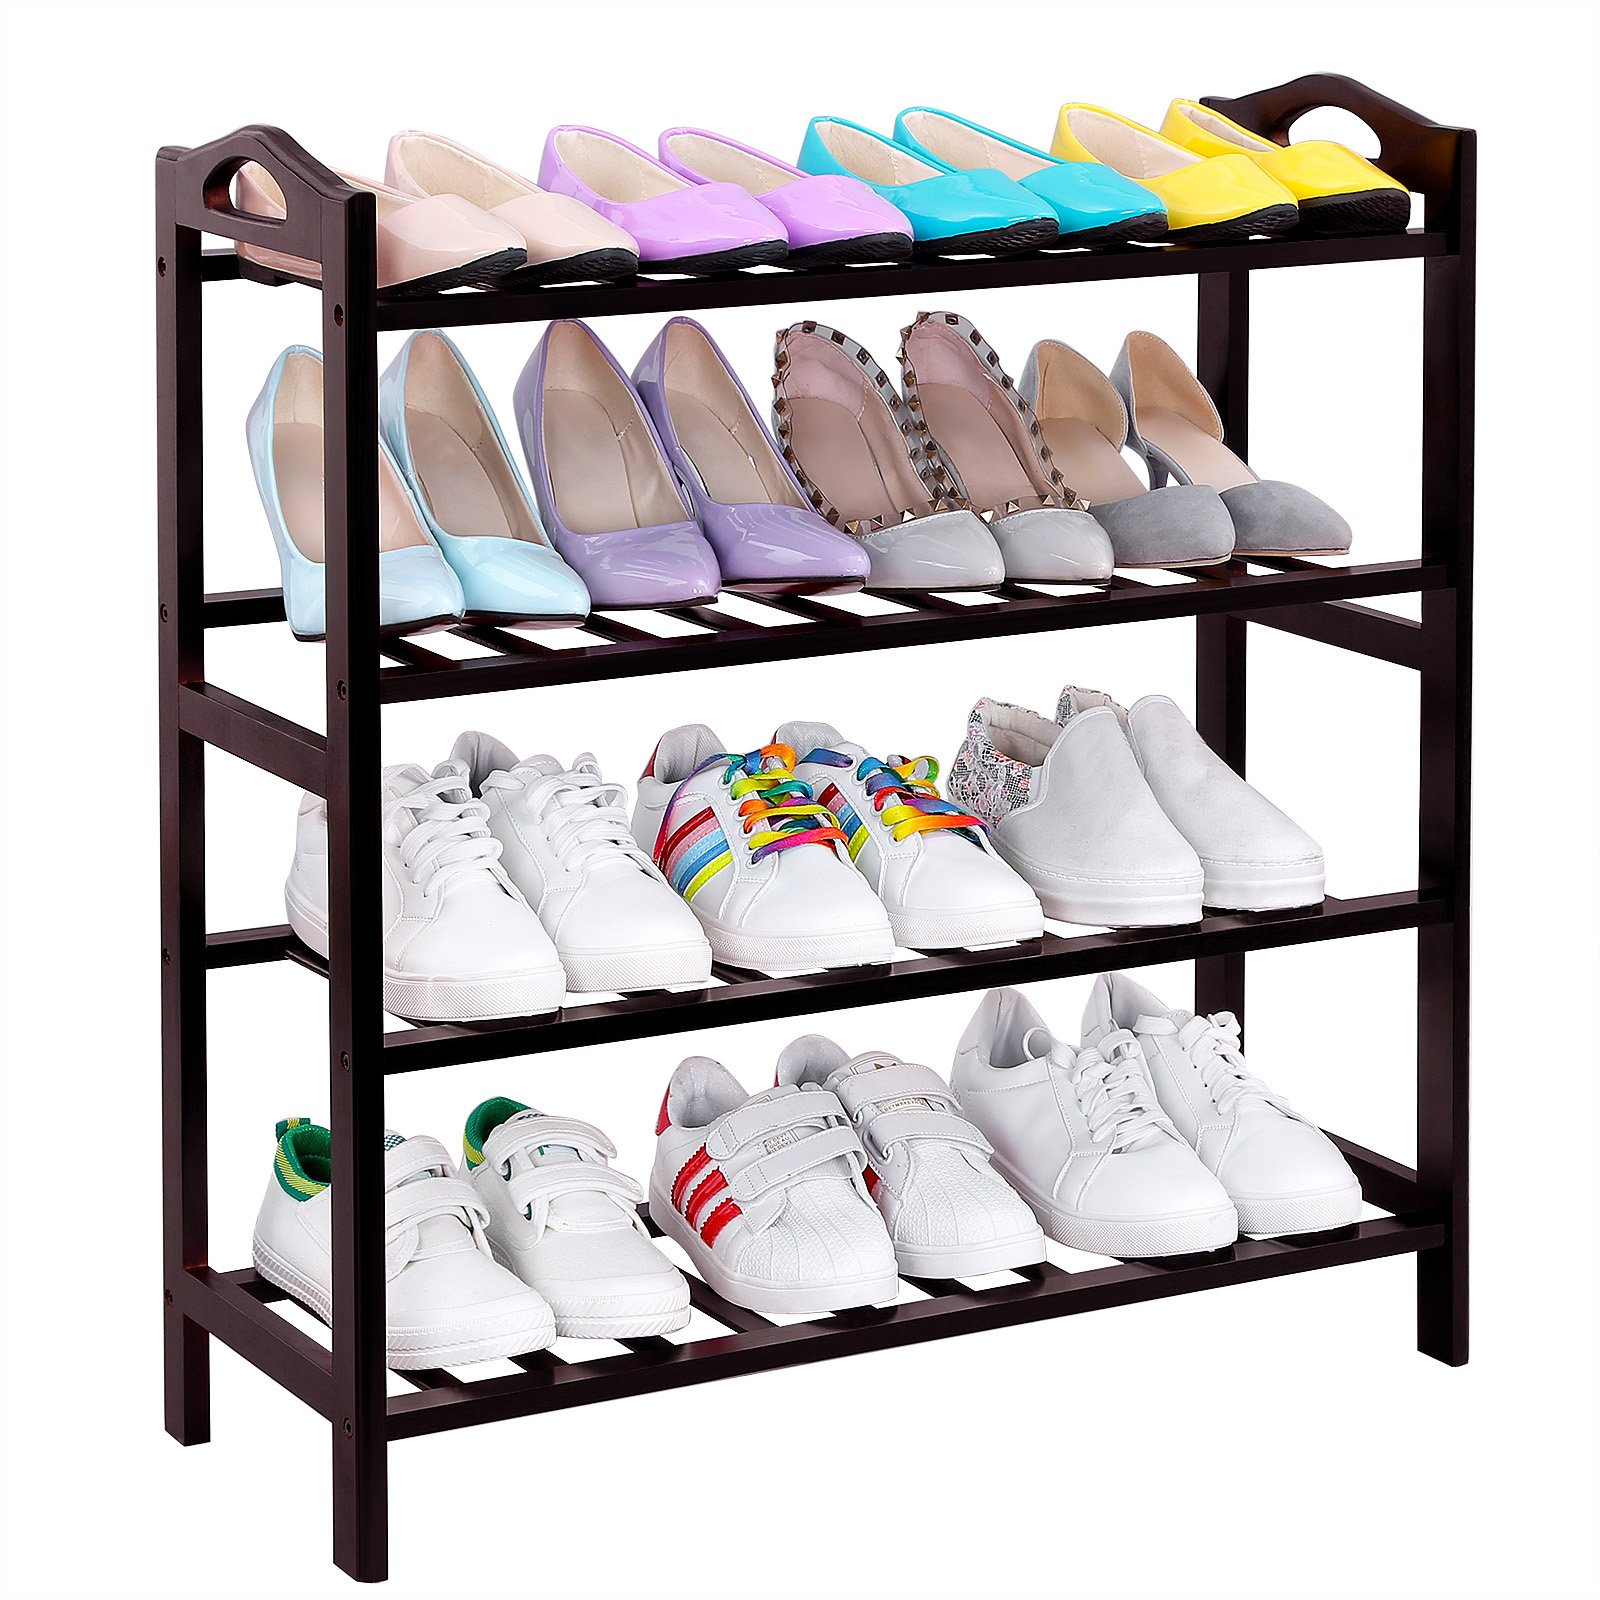 SONGMICS 100% Bamboo 4-Tier Shoe Rack 30 Inch Wide Entryway Shoe Shelf Storage Organizer, 26.6'' L x 10.4'' W x 29.4'' H,Holds Up to 16 Pairs,Ideal for Hallway Bathroom Garden Brown ULBS94Z by SONGMICS (Image #3)